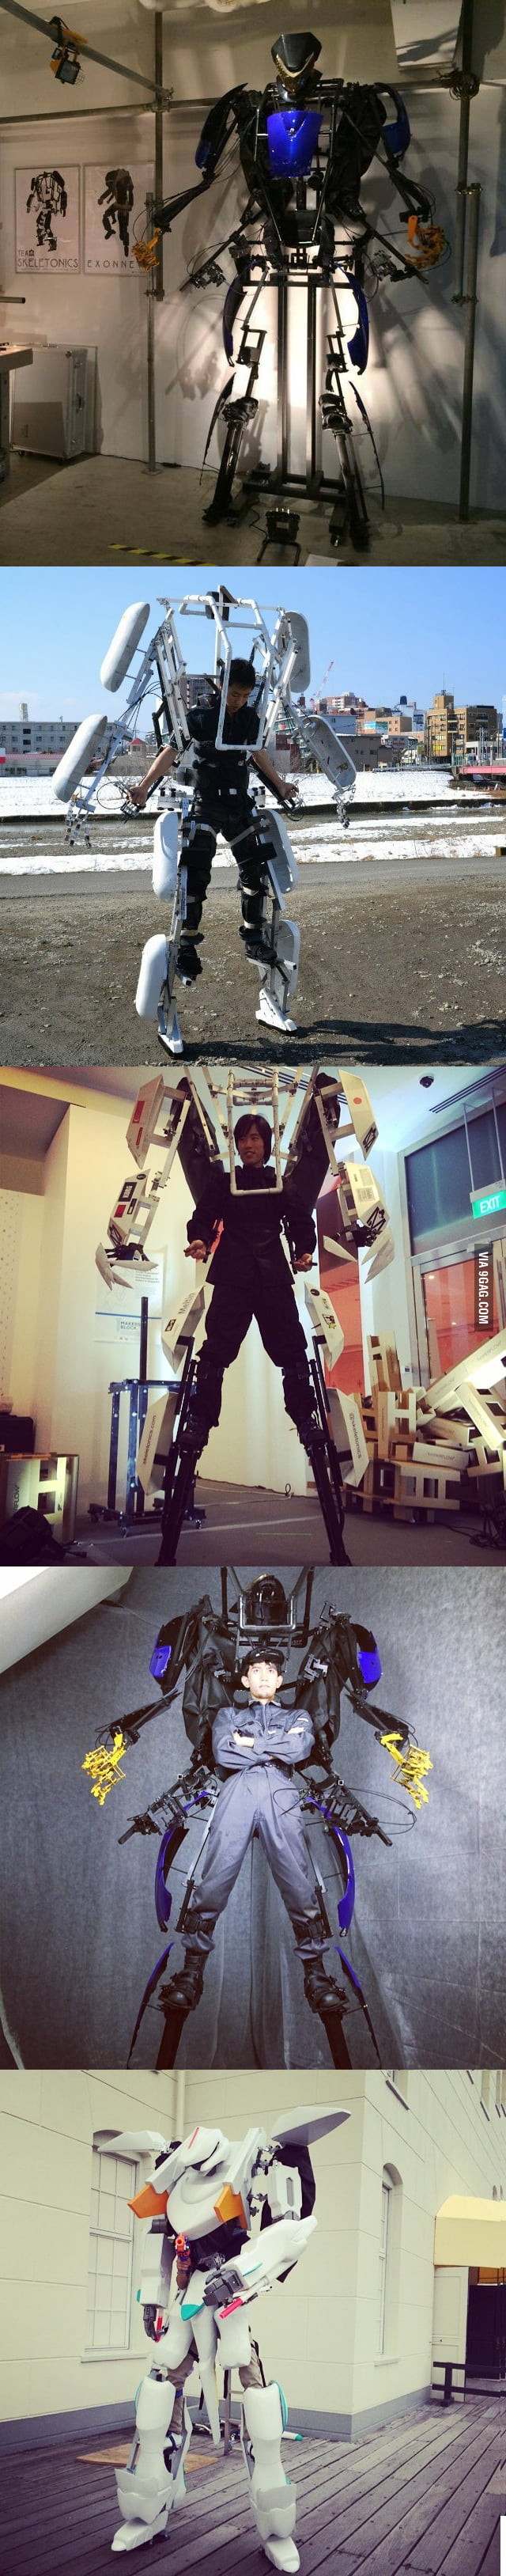 Saw this, Mechanical Suit Skeletonics, in the near future in Japan